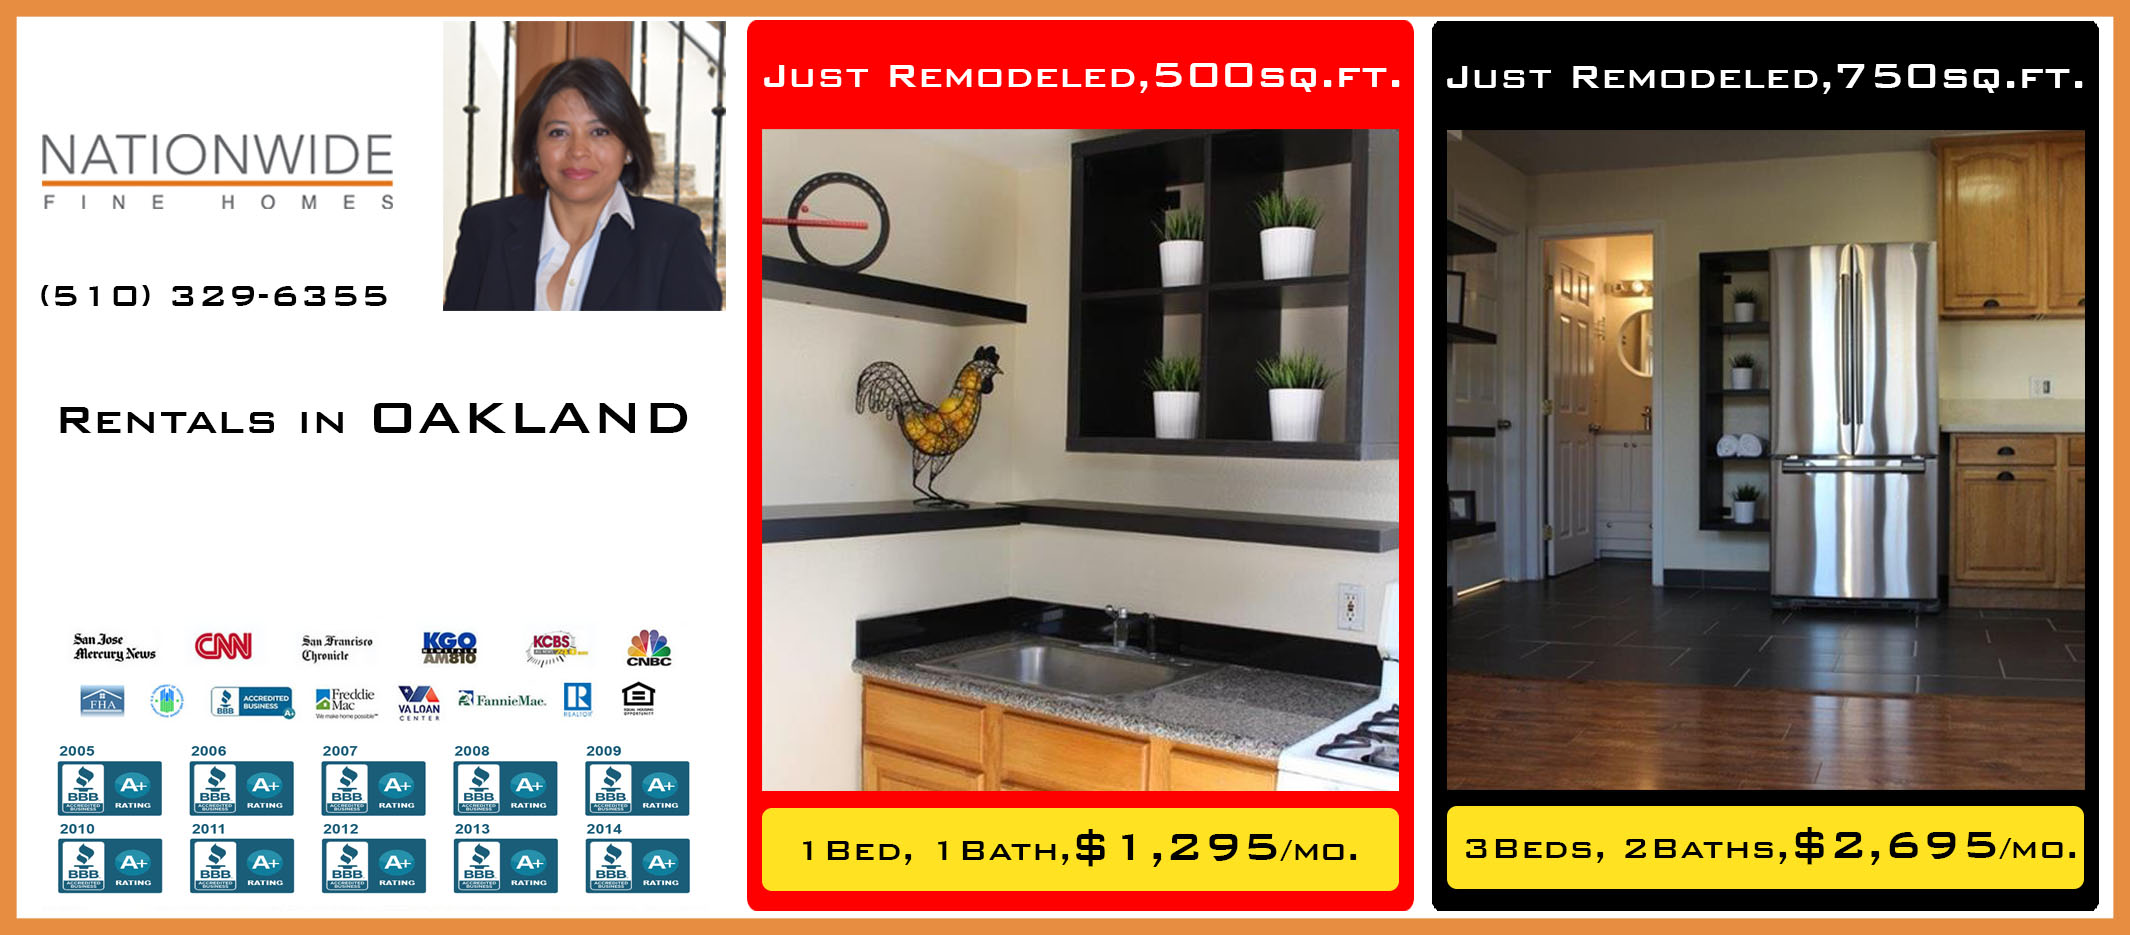 Just Remodeled Rentals in <a href='https://www.searcheastbay.com/index.php?types[]=1&types[]=2&areas[]=city:Oakland&beds=0&baths=0&min=0&max=100000000&map=0&quick=1&submit=Search' title='Search Properties in Oakland'>Oakland</a>